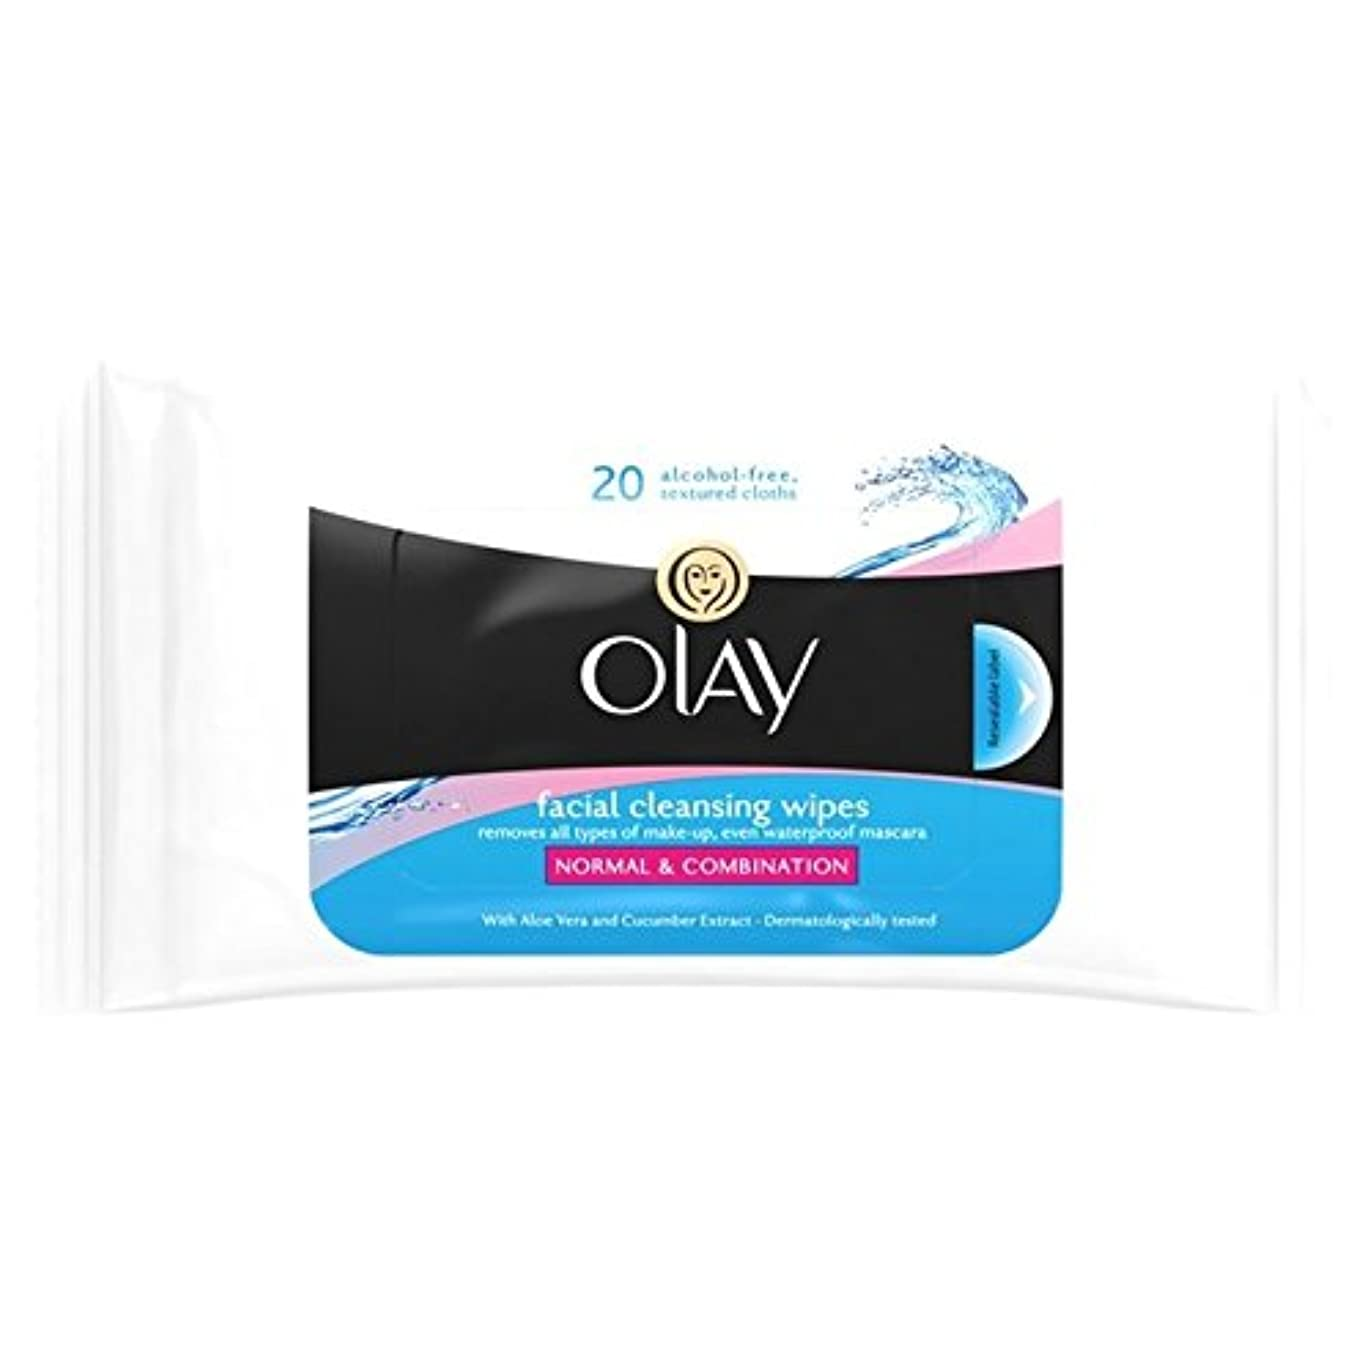 Olay Essentials Wet Cleansing Wipes Normal/Dry/Combination Skin 20 per pack (Pack of 6) - オーレイの必需品、ウェットクレンジング、...